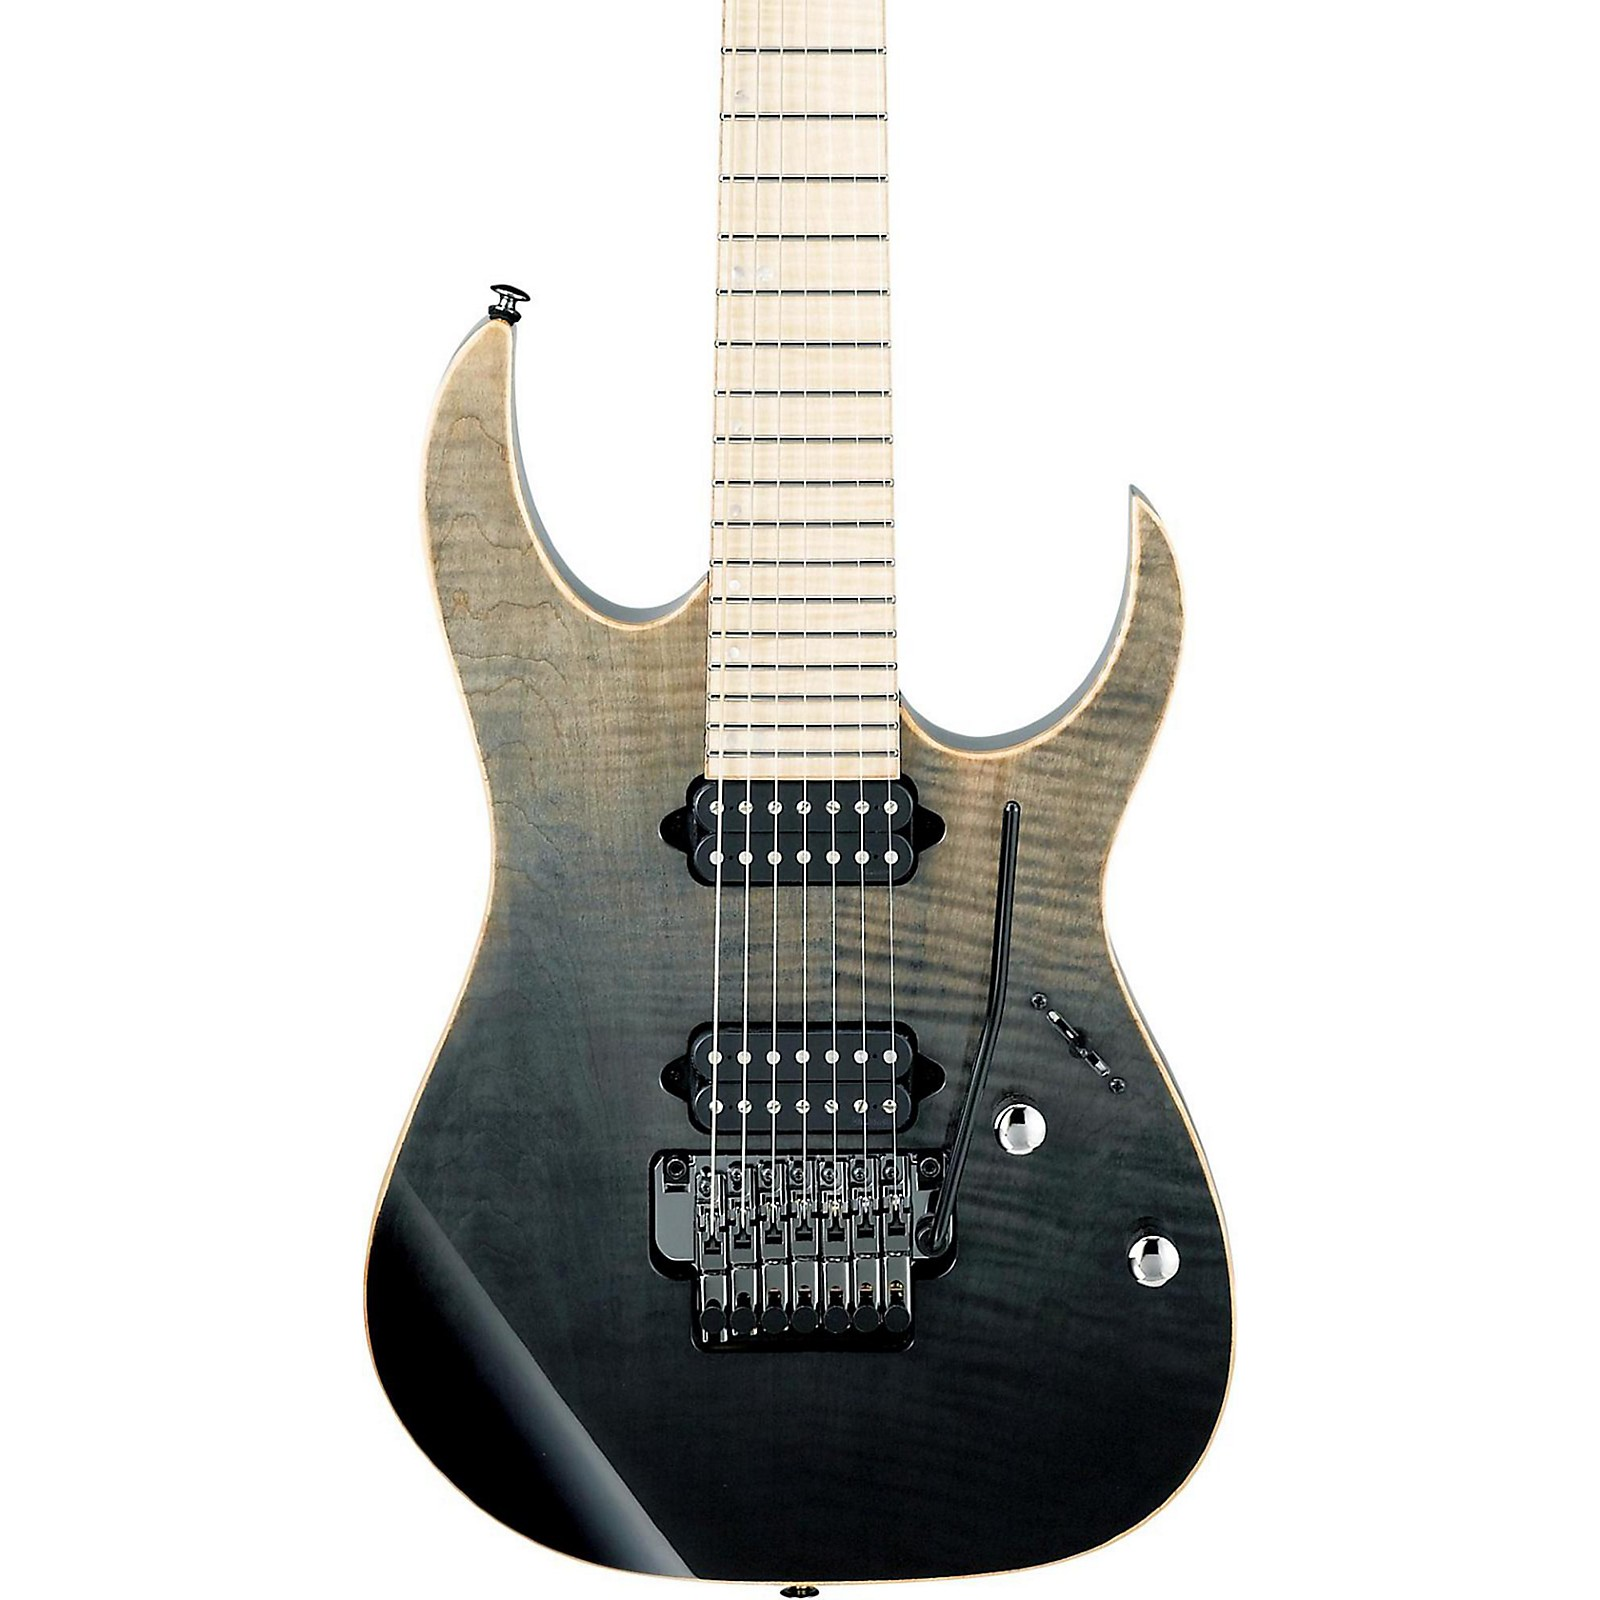 Ibanez RG Premium 7-string Electric Guitar with Case